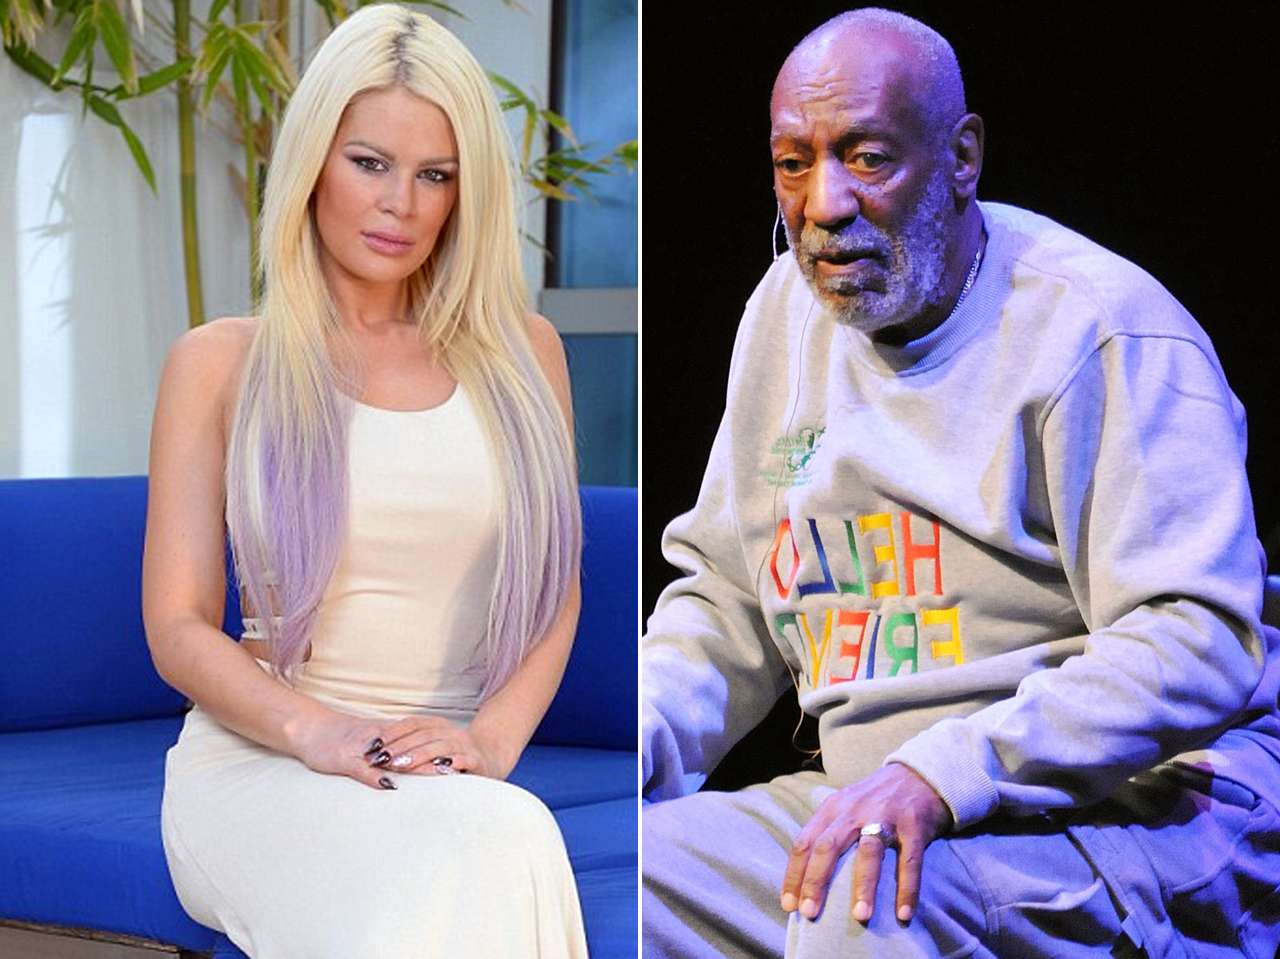 Chloe Goins / Bill Cosby. Foto: Daily Mail / Getty Images